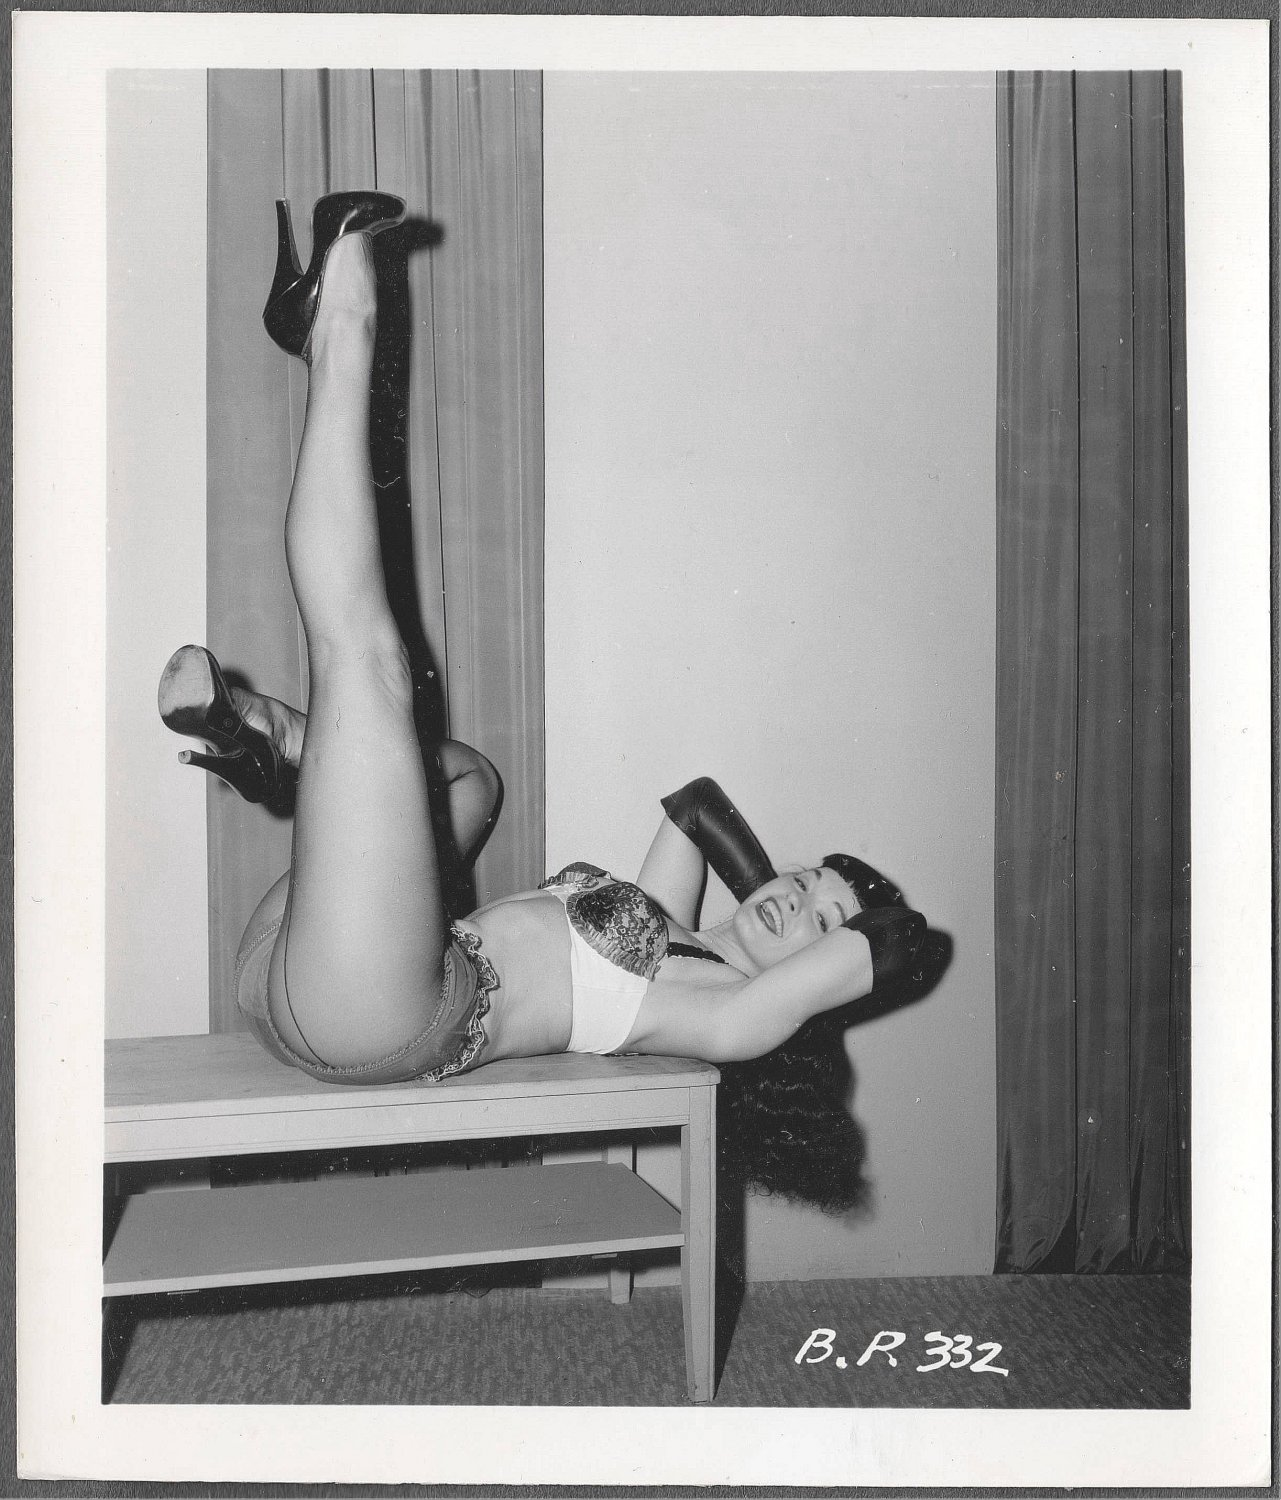 BETTY PAGE SEXY COOL LEGGY BENCH POSE IRVING KLAW VINTAGE PHOTO 4X5 BP-332